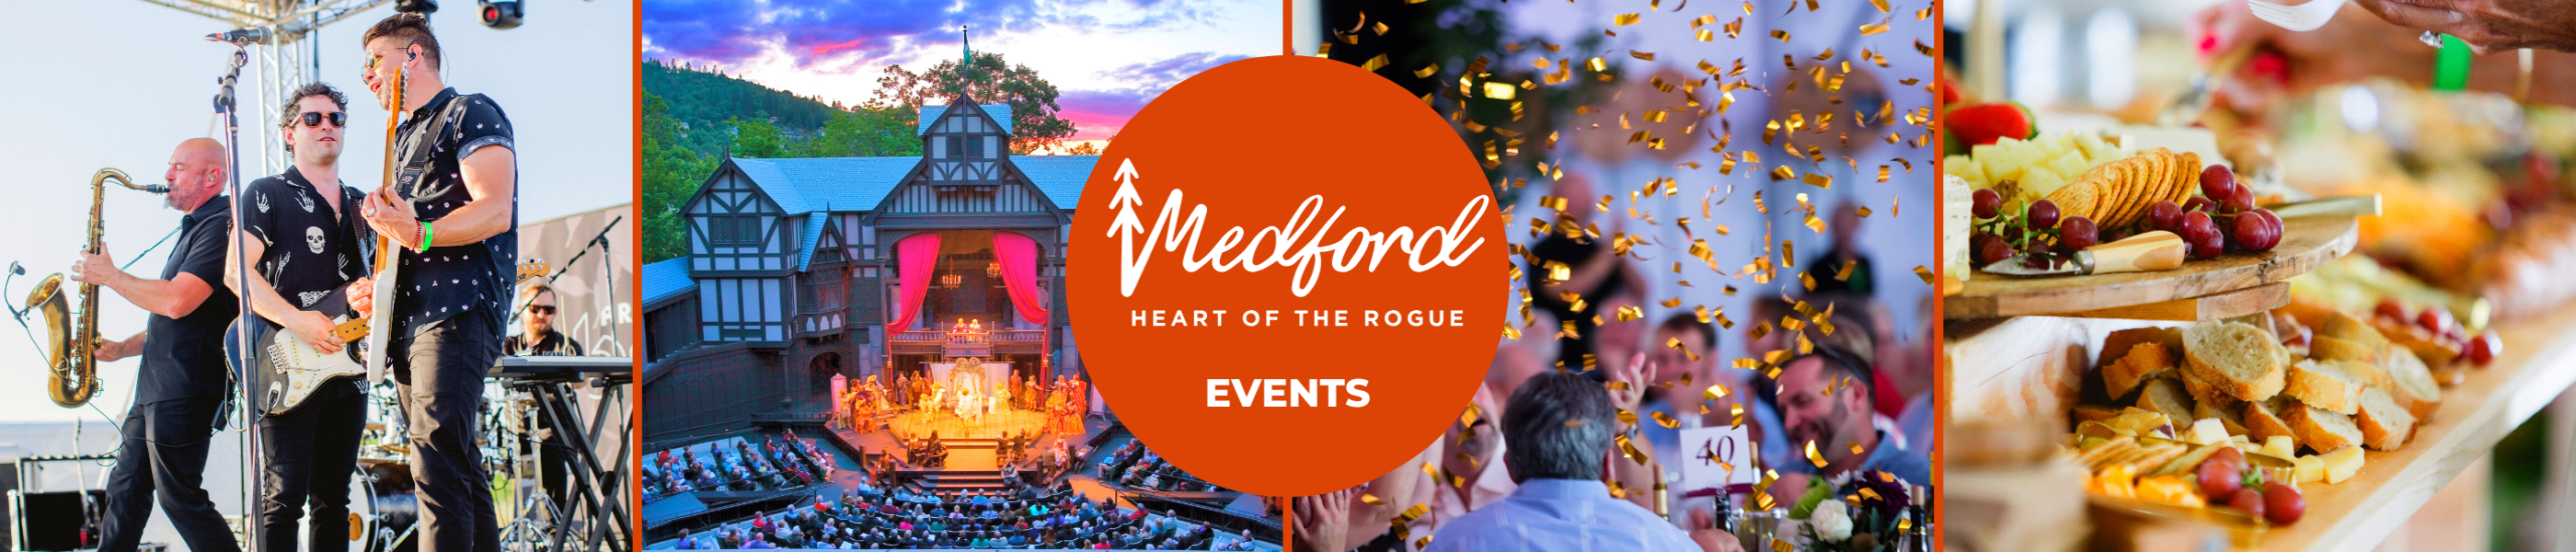 Medford Events